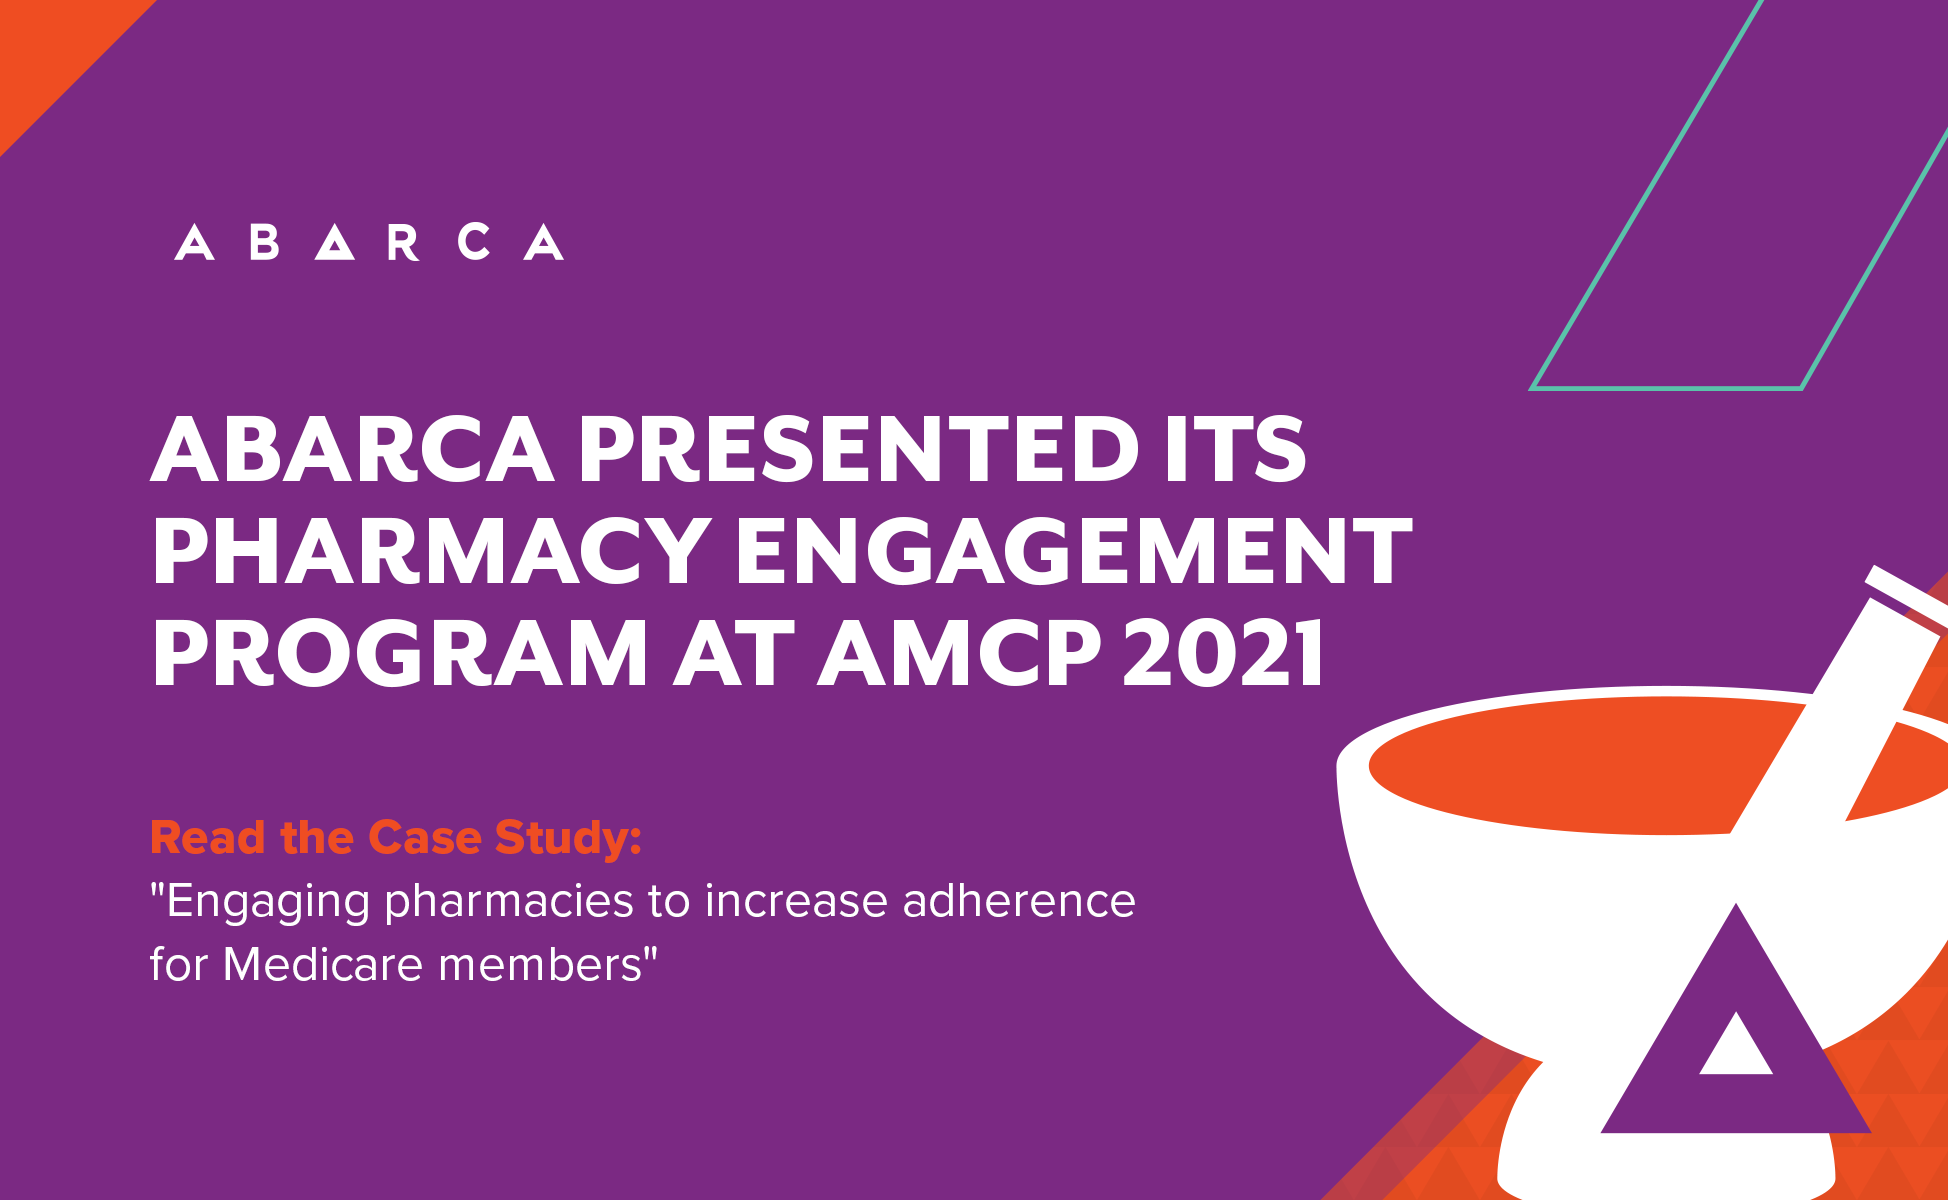 Abarca Health: ENGAGING PHARMACIES TO INCREASE ADHERENCE FOR MEDICARE MEMBERS